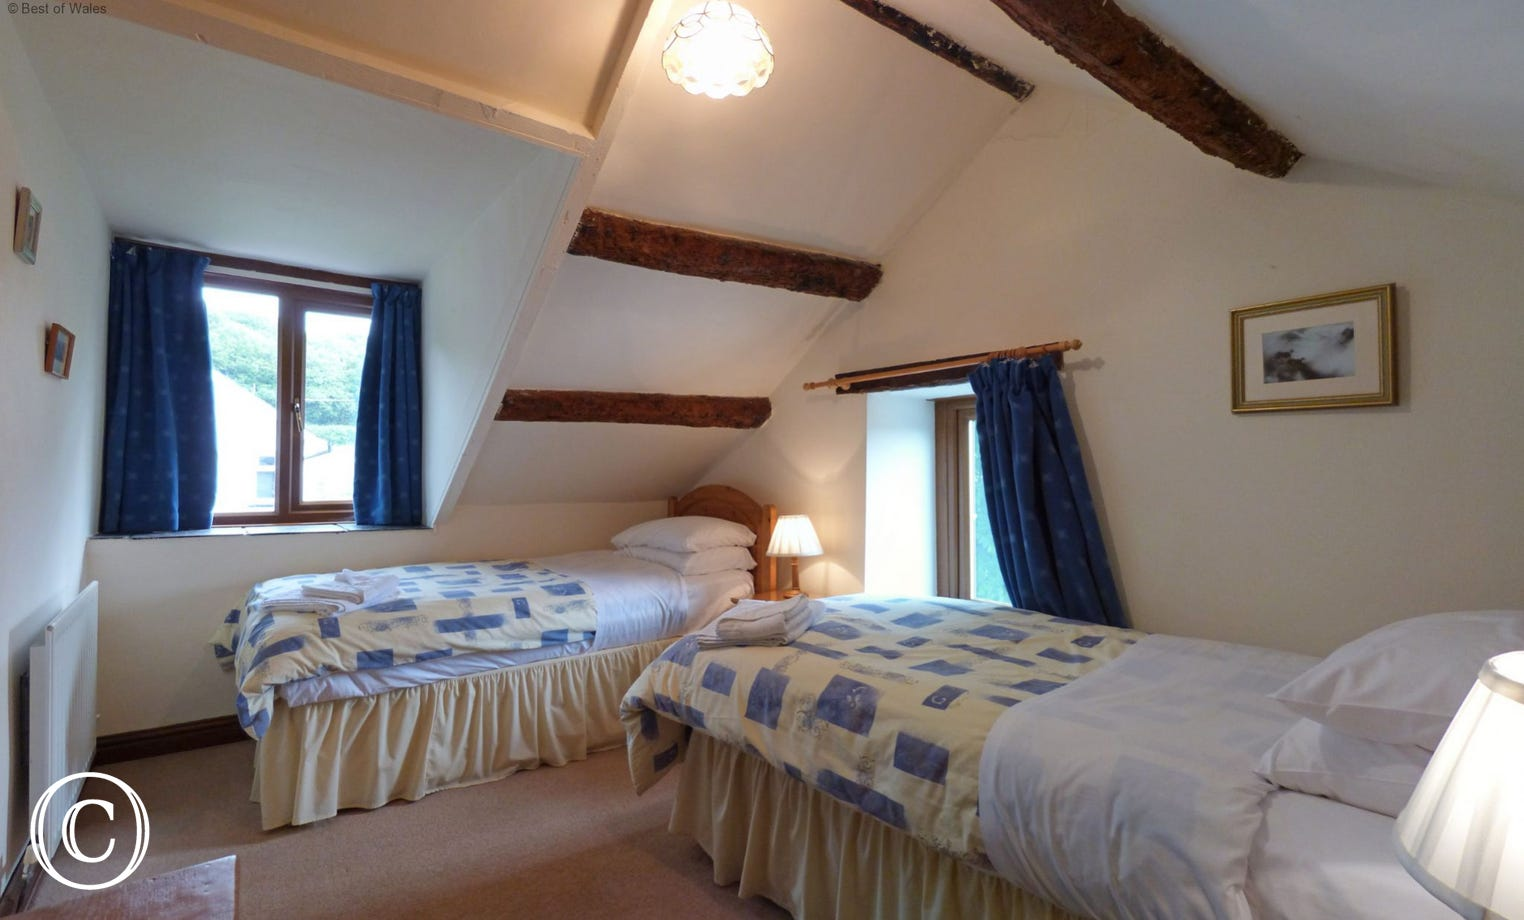 Cosy twin bedroom at Ciperdy's working farm holidays in Wales